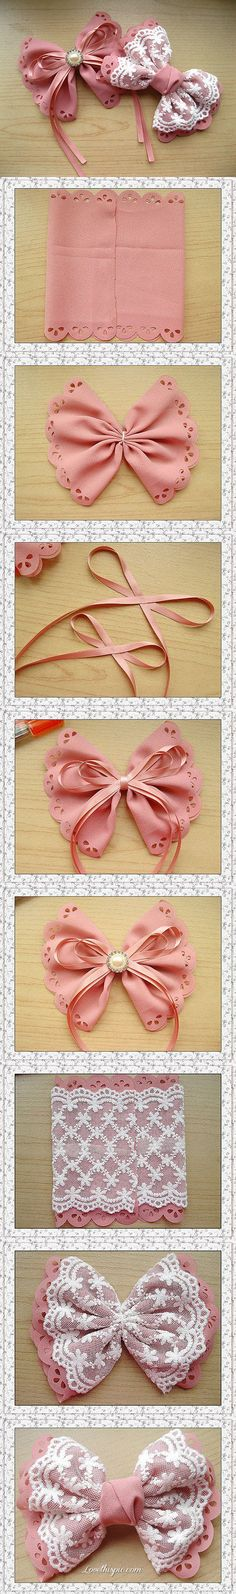 Lace Bow Pictures, Photos, and Images for Facebook, Tumblr, Pinterest, and Twitter